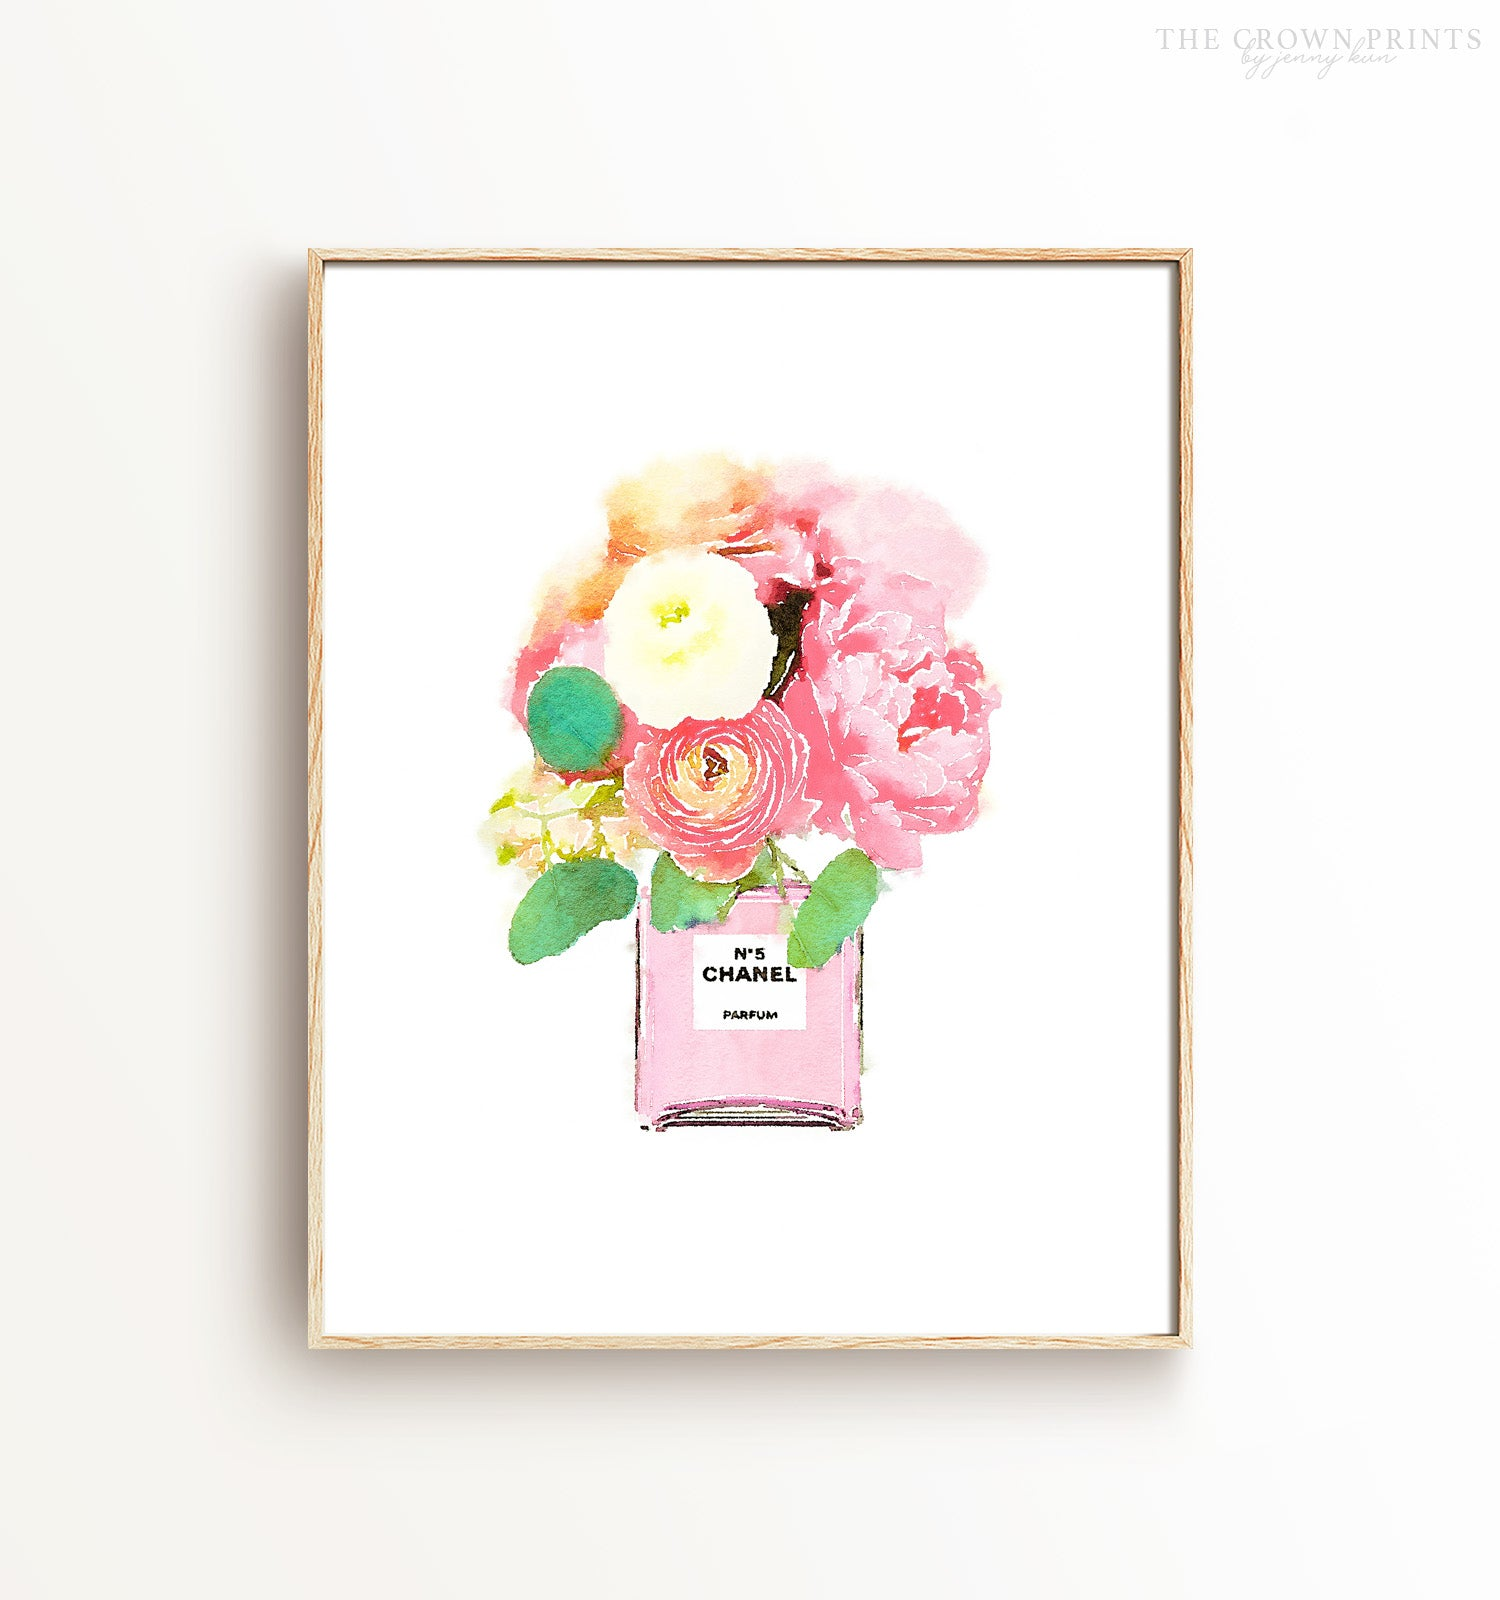 photo about Printable Prints identify Watercolor Chanel Floral Printable Artwork